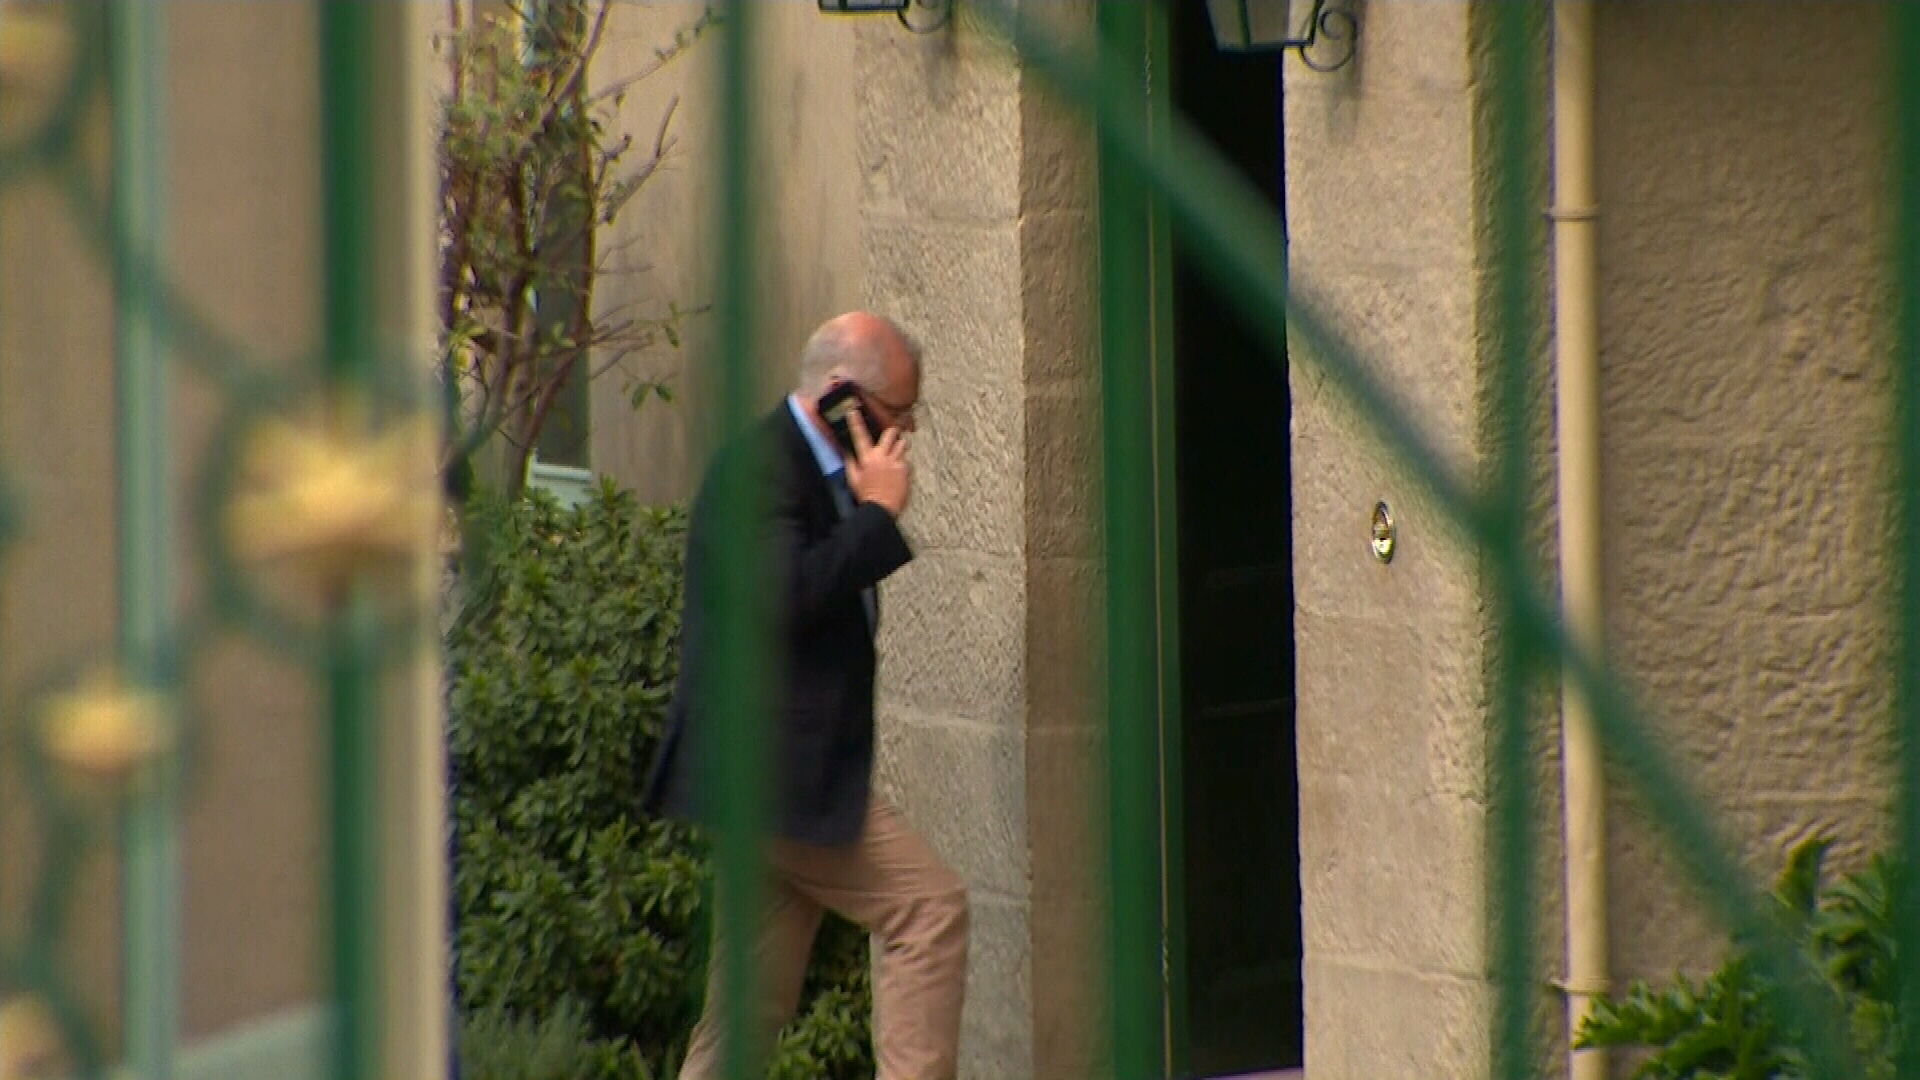 PM returns to Kirribilli House